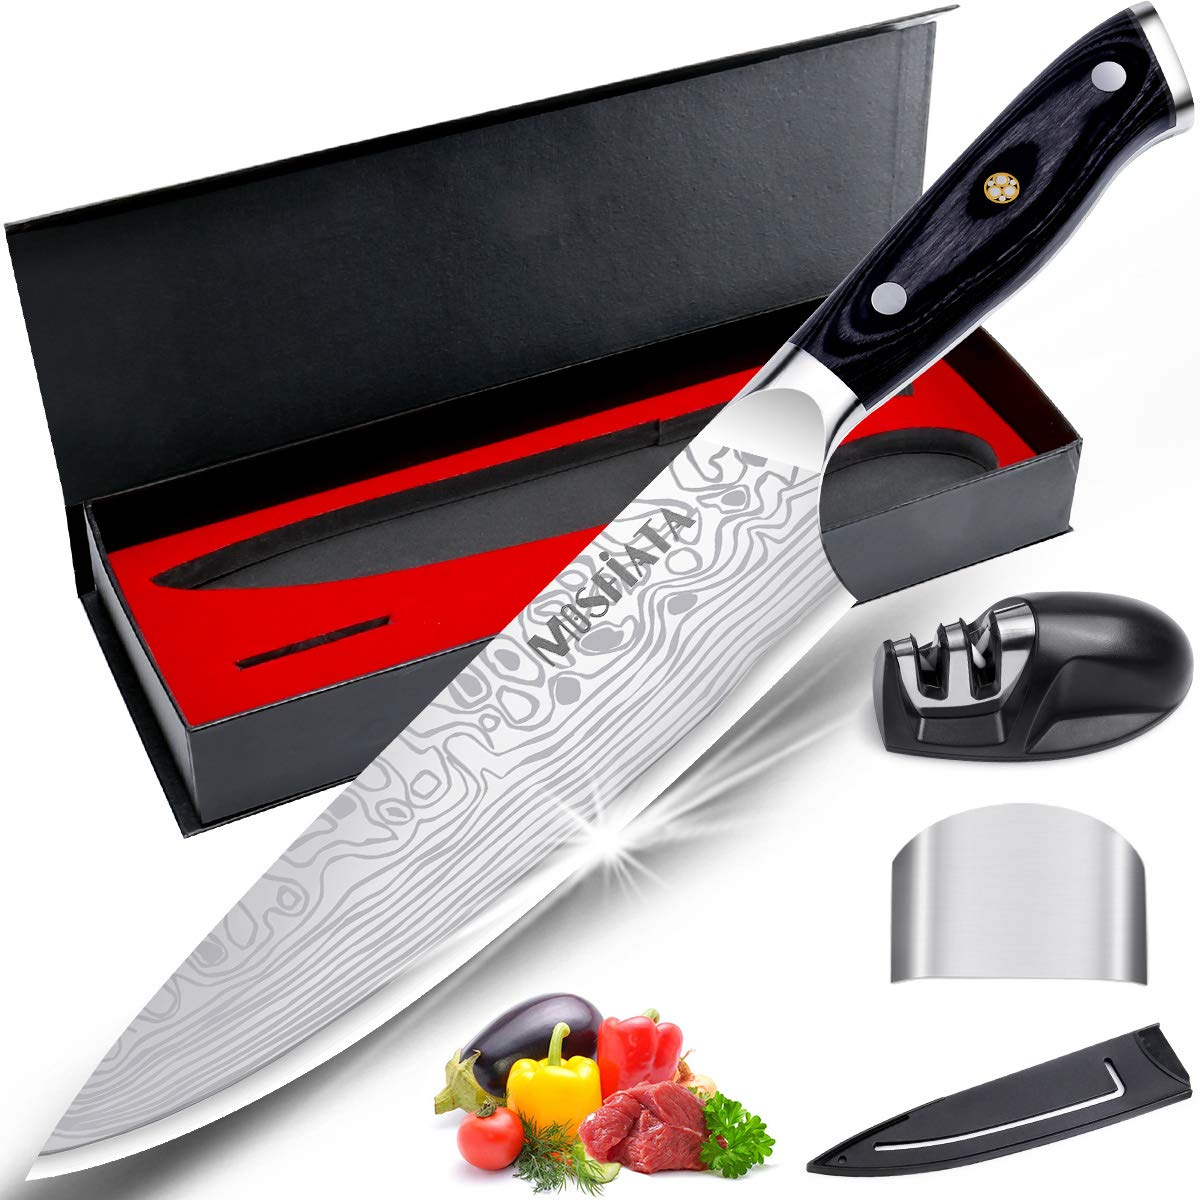 MOSFiATA 8'' Super Sharp Professional Chef's Knife with Finger Guard and Knife Sharpener, German High Carbon Stainless Steel 4116 with Micarta Handle and Gift Box by MOSFiATA